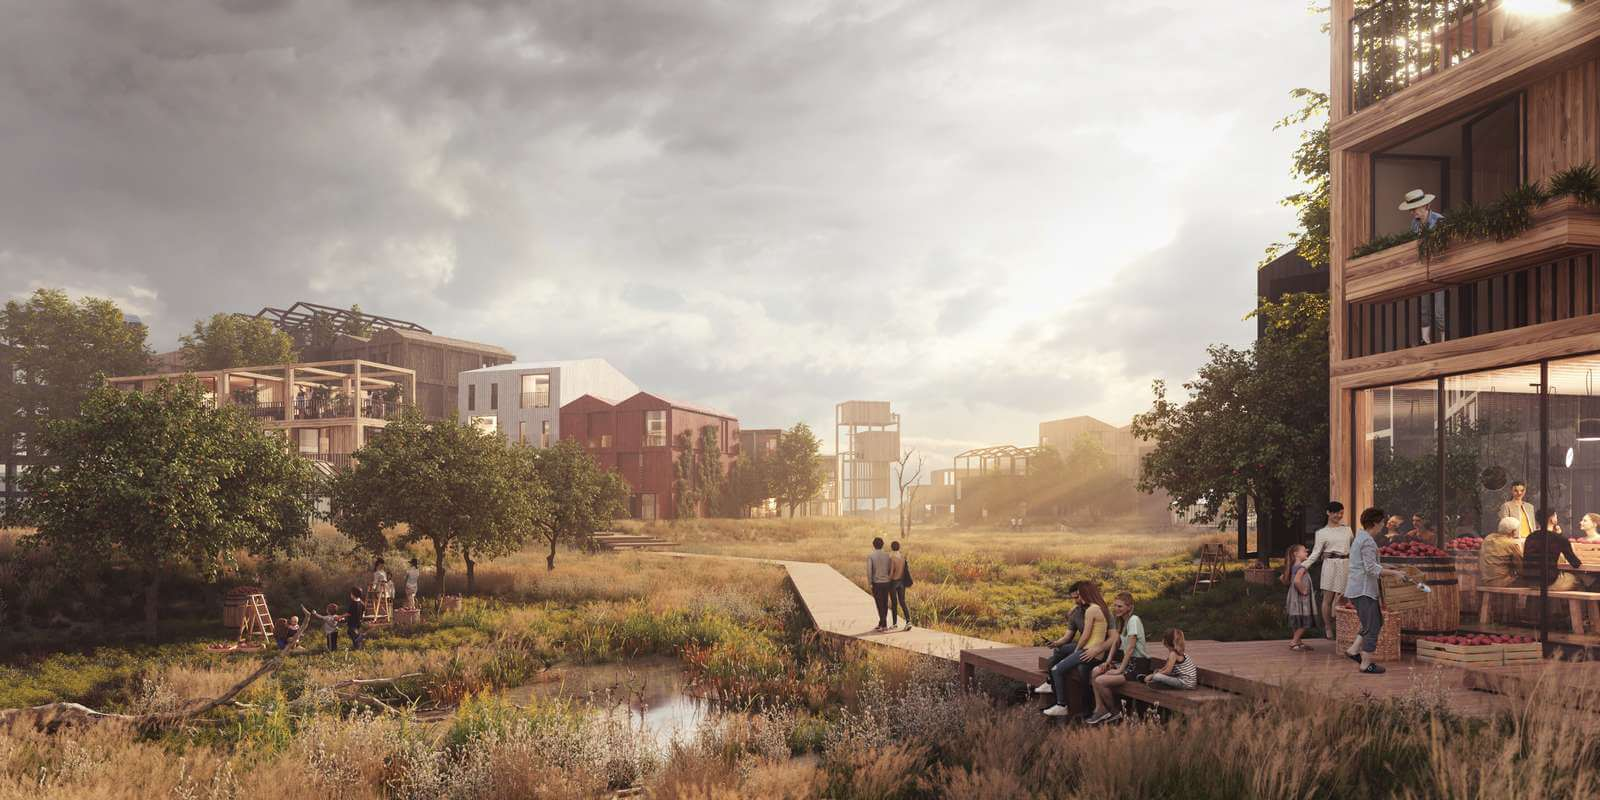 The masterplan envisions a balance between the city and the natural surroundings | Fælledby | Henning Larsen | STIRworld